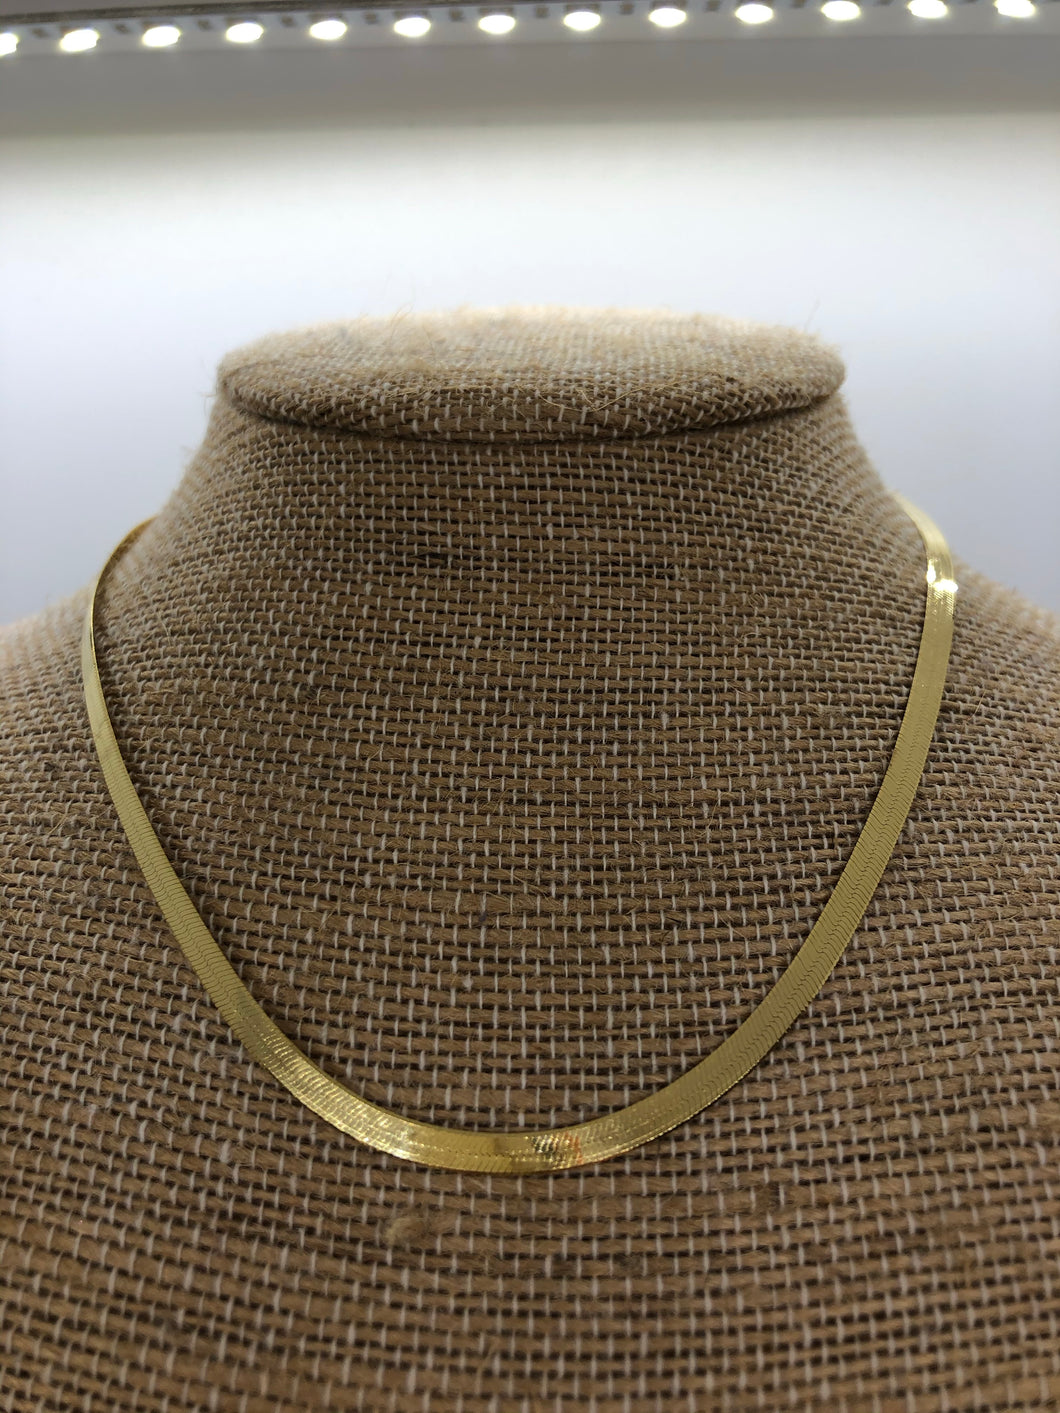 Gold Snake Chain Necklace 16